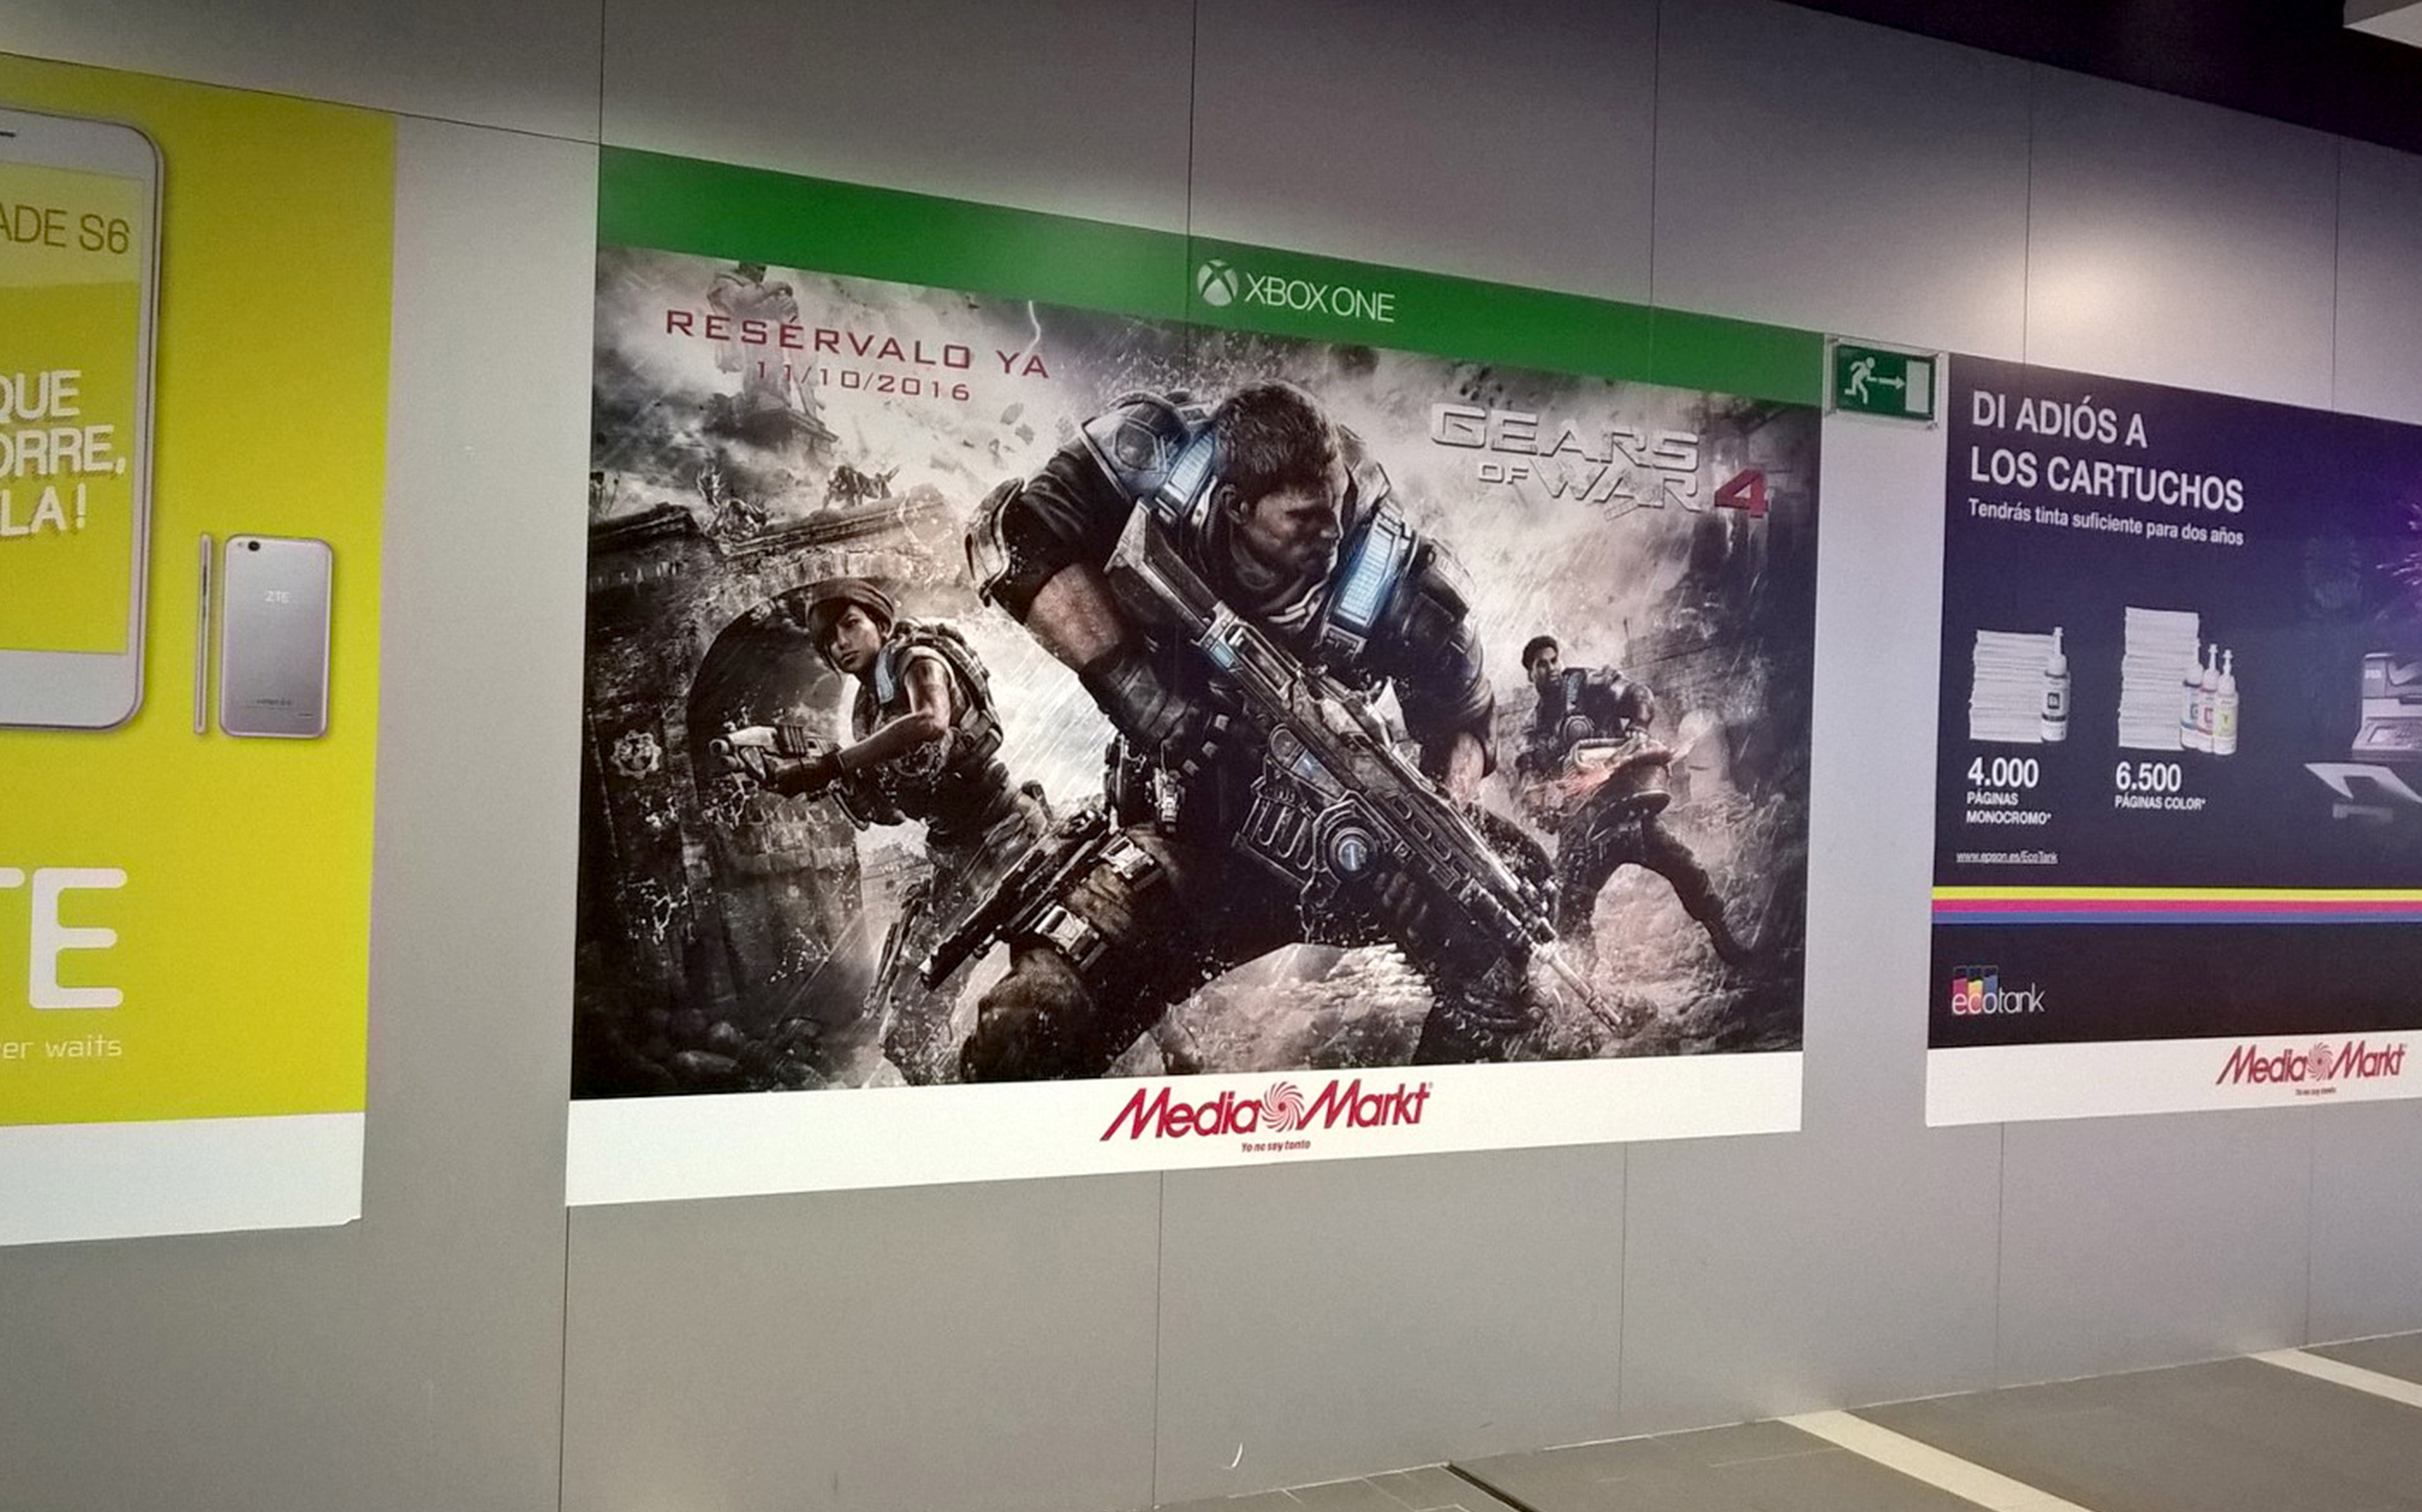 Cartel Gears of Wars Media Markt